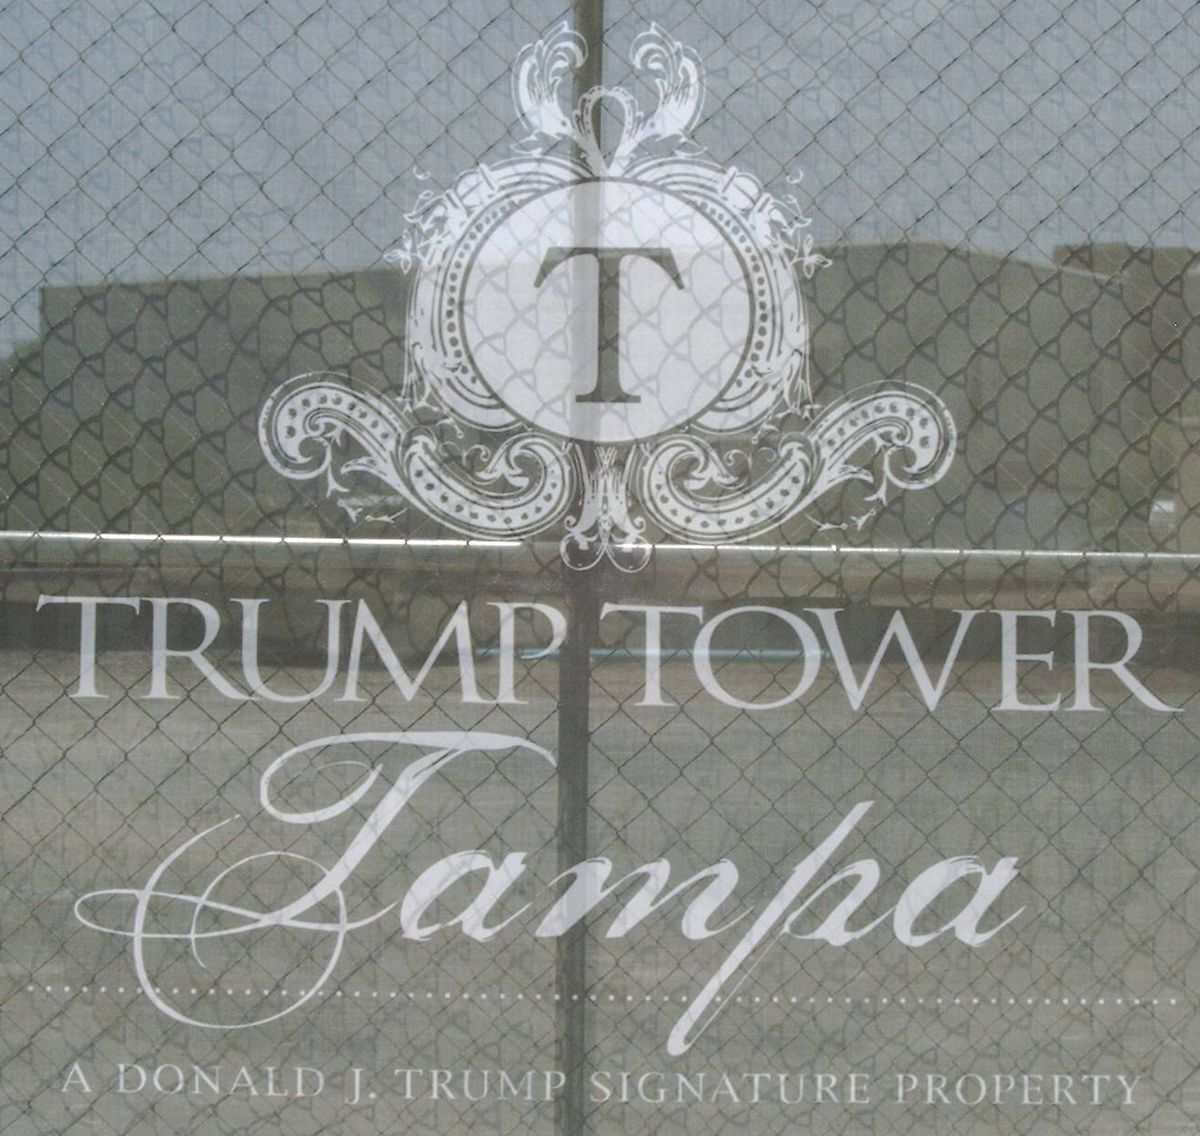 Trump Tower (Tampa) - Wikipedia